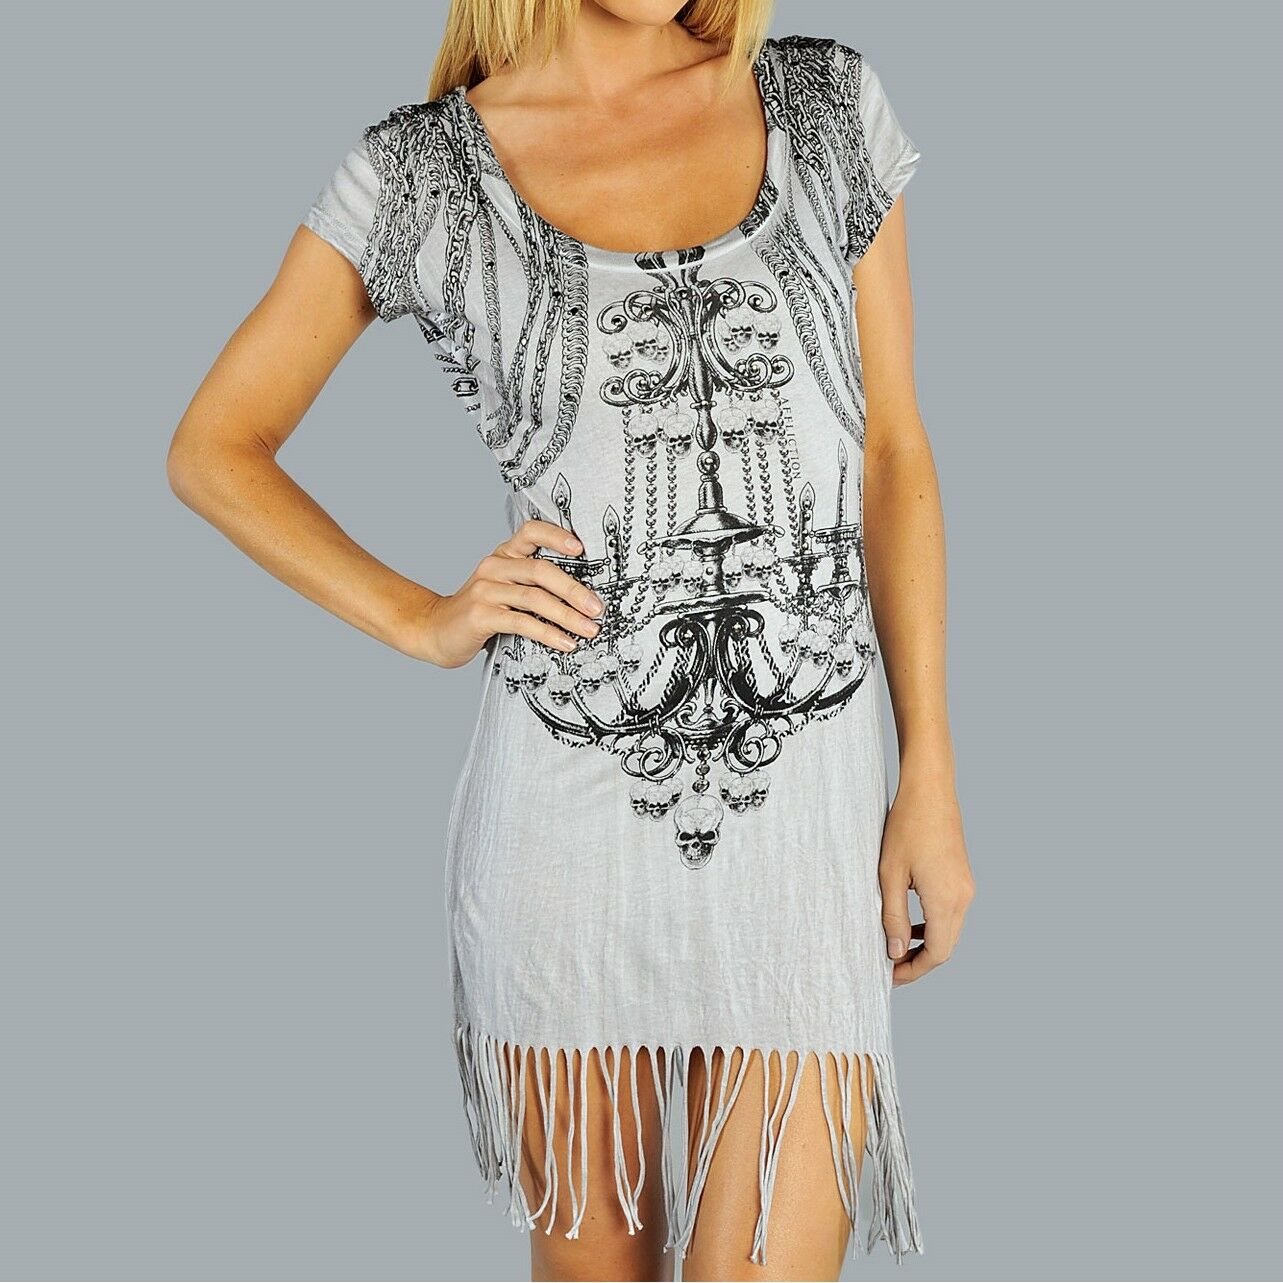 Affliction CHANDELIER damen Dress S Small NWT NEW Skull Fringe